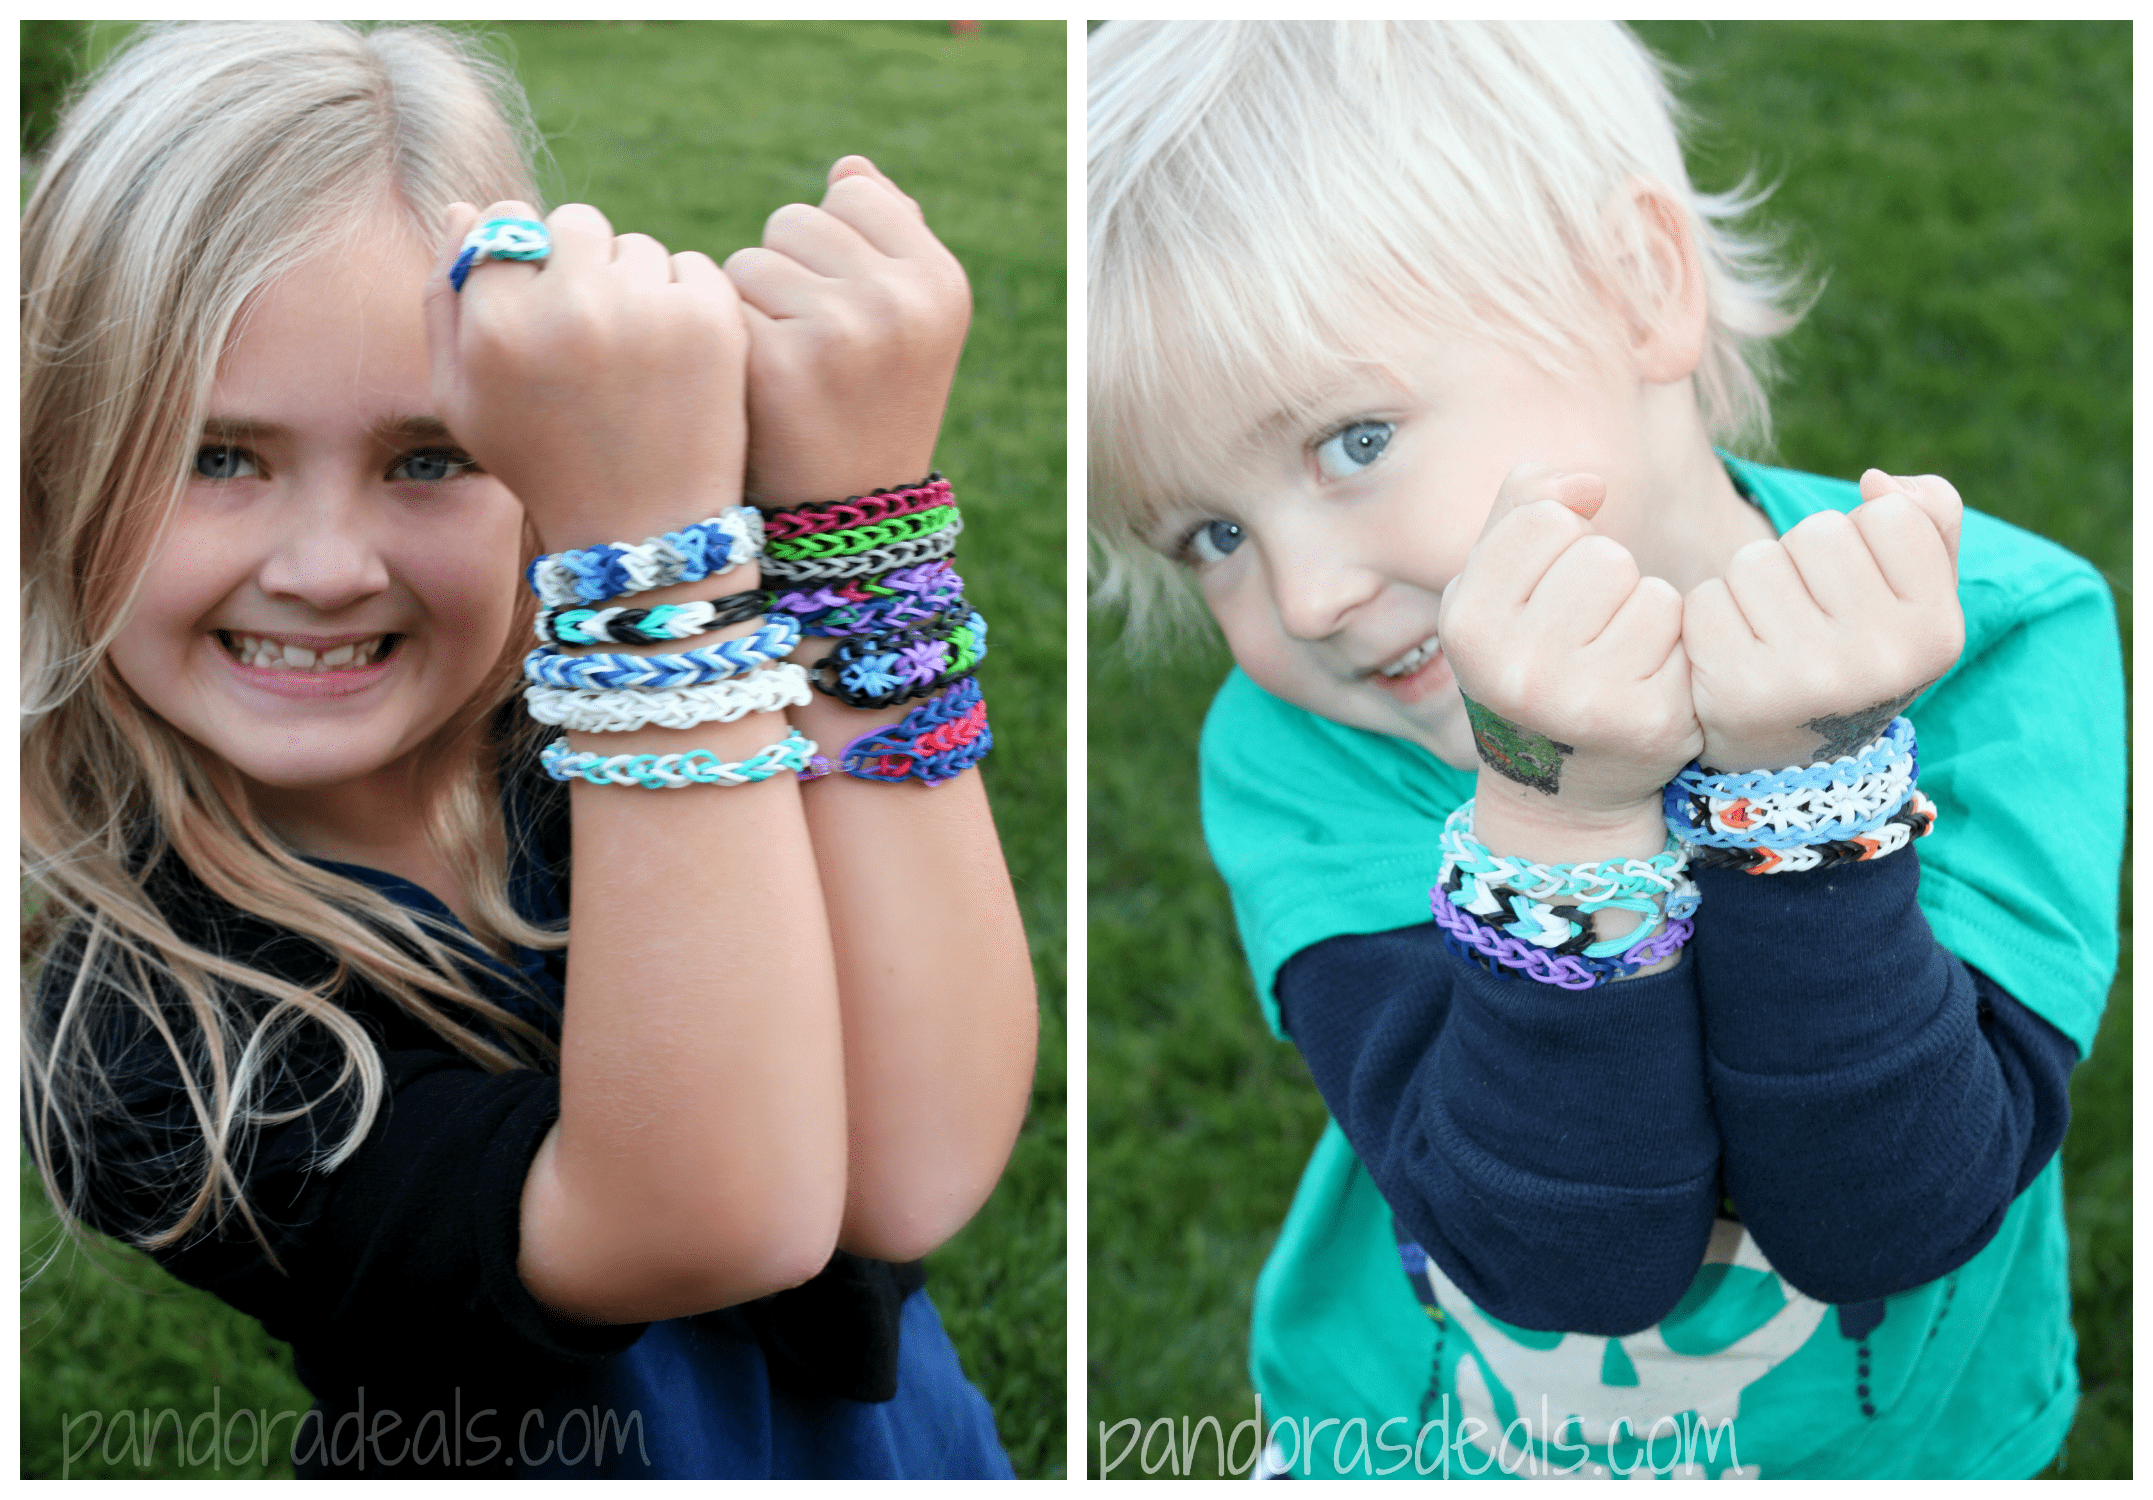 Frozen Bracelets on Kids